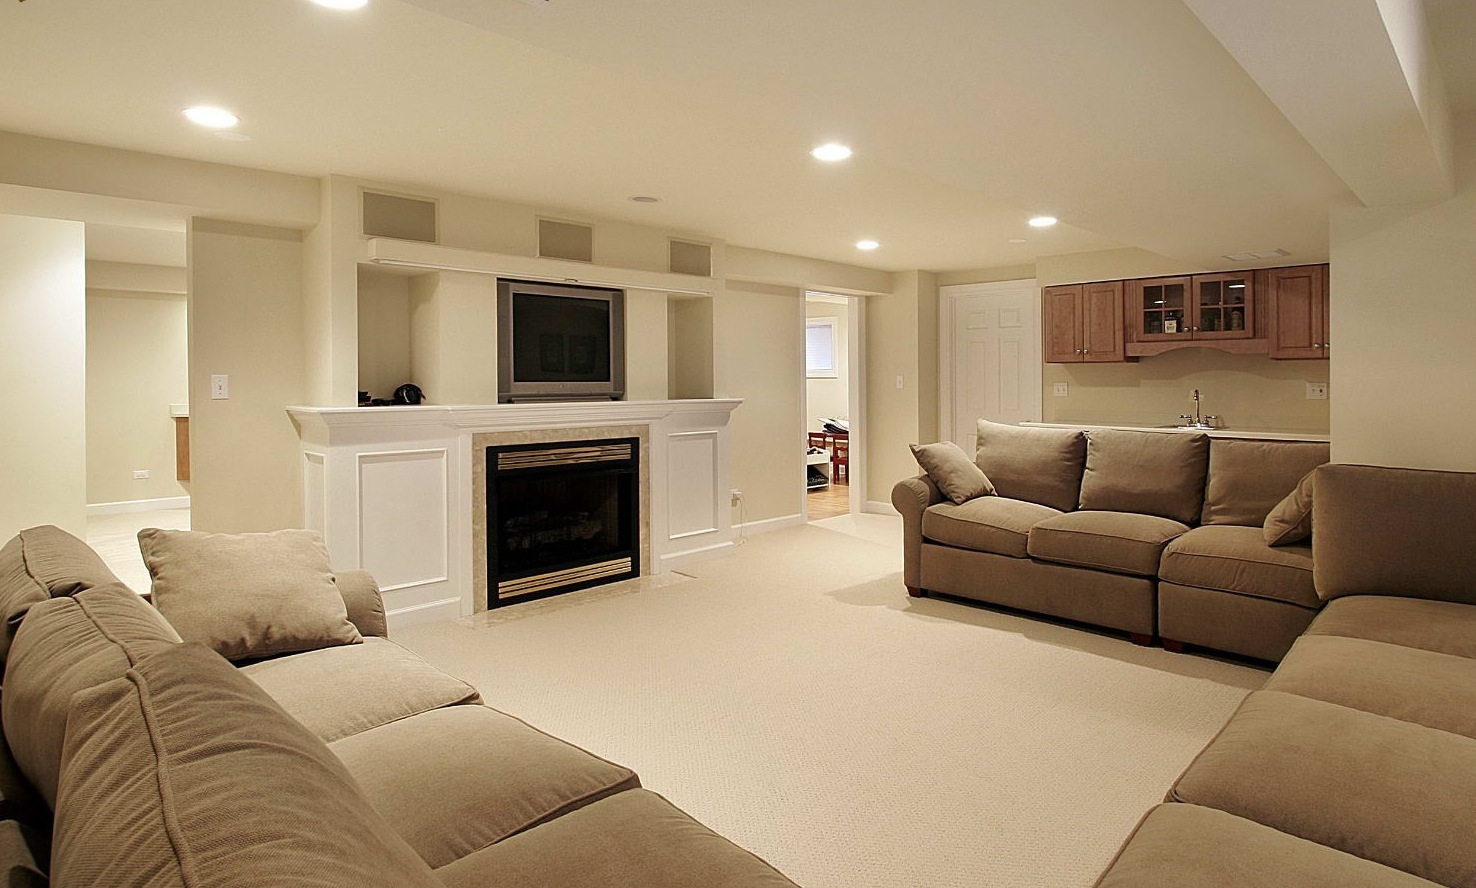 Designing Basement Layout Part - 40: Interior Design Ideas